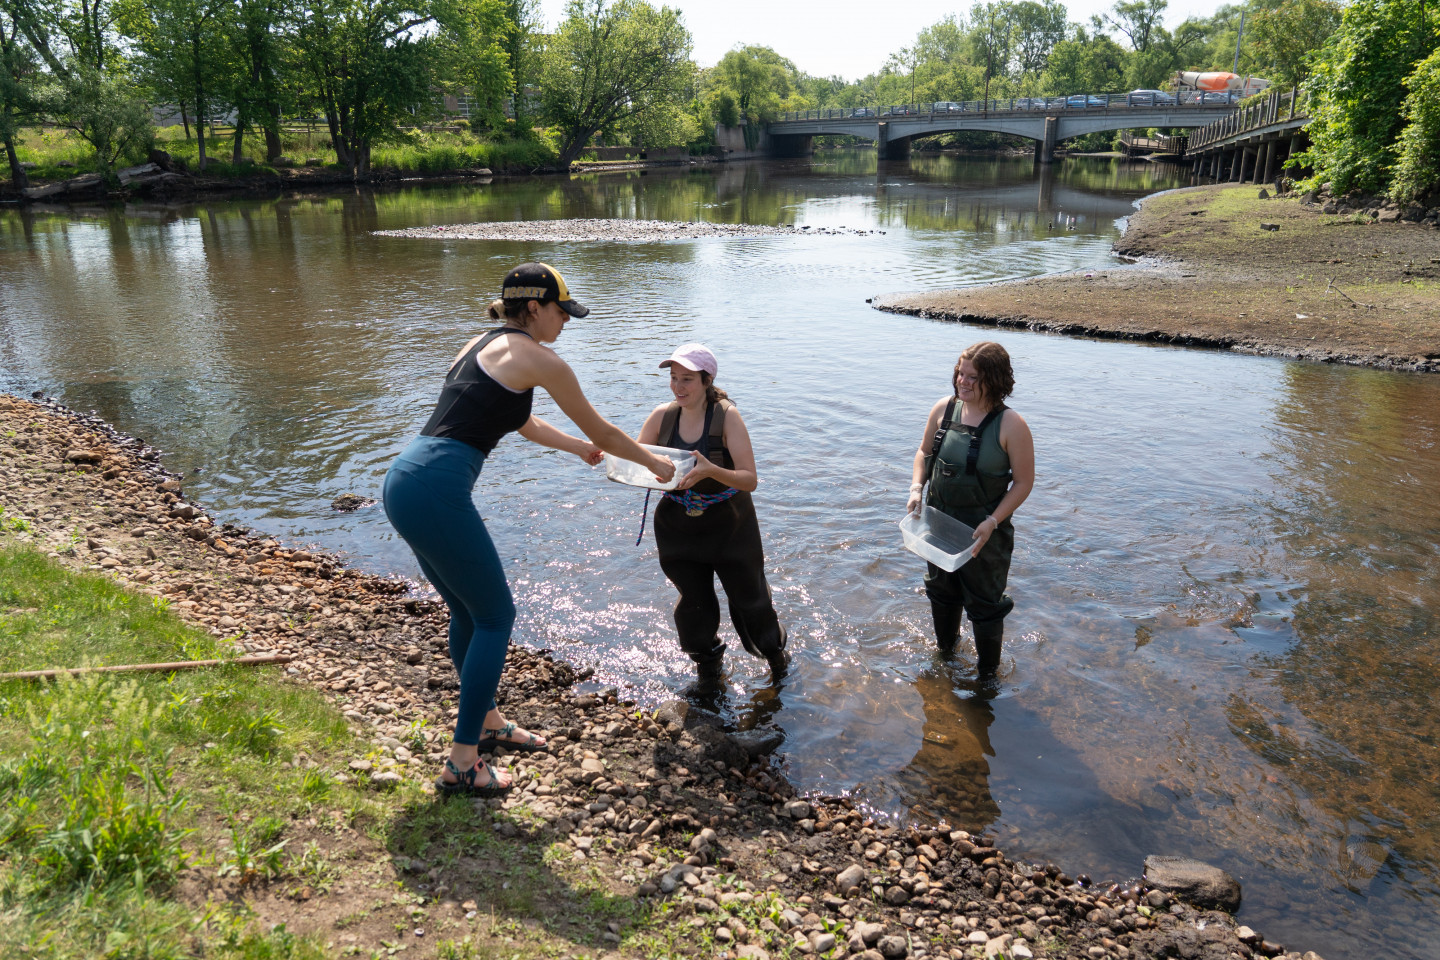 Students stand in the Kalamazoo River.